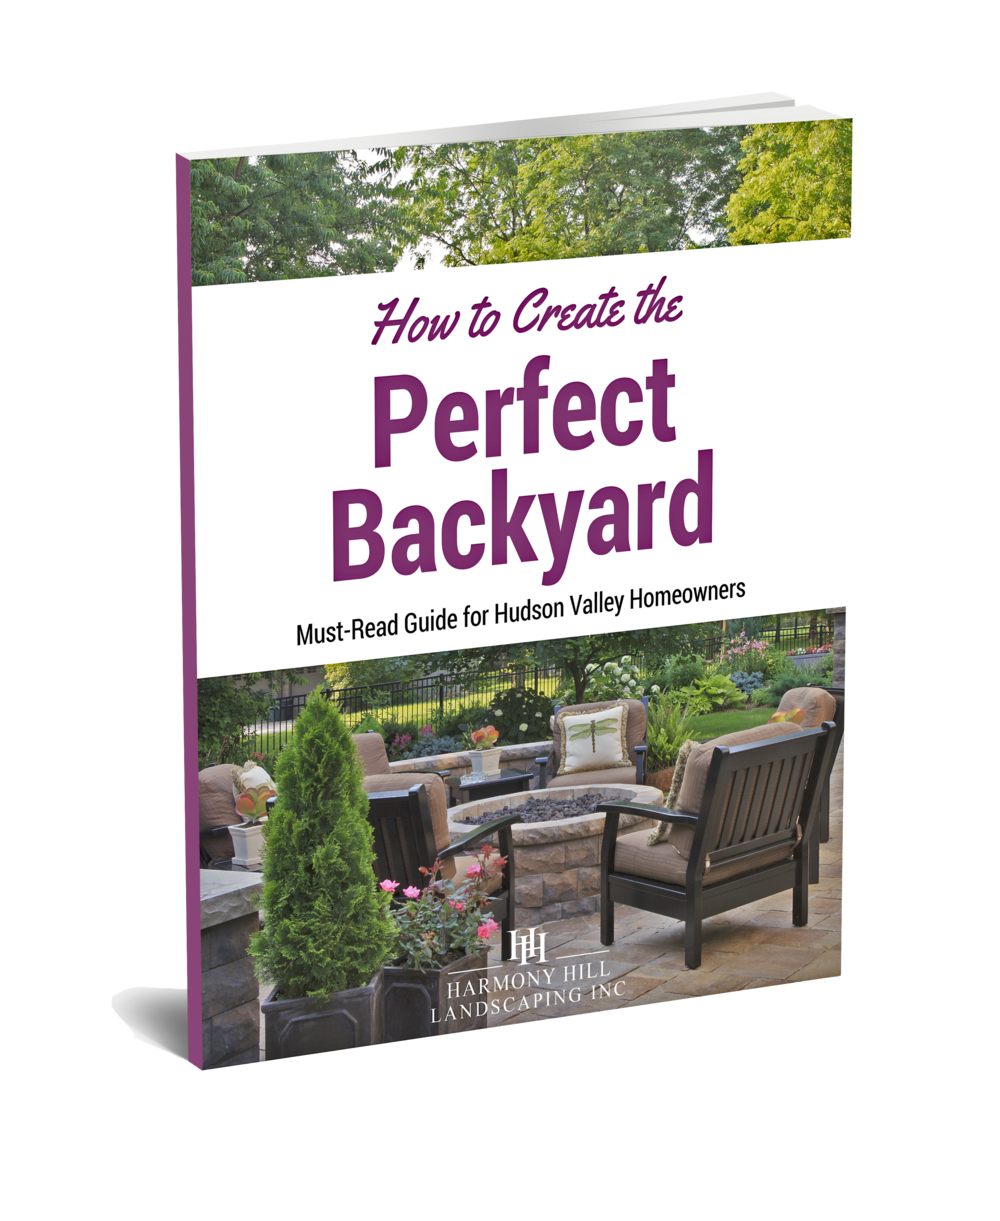 Create the perfect backyard patio in the Hudson Valley, NY. Dutchess County, NY Region.